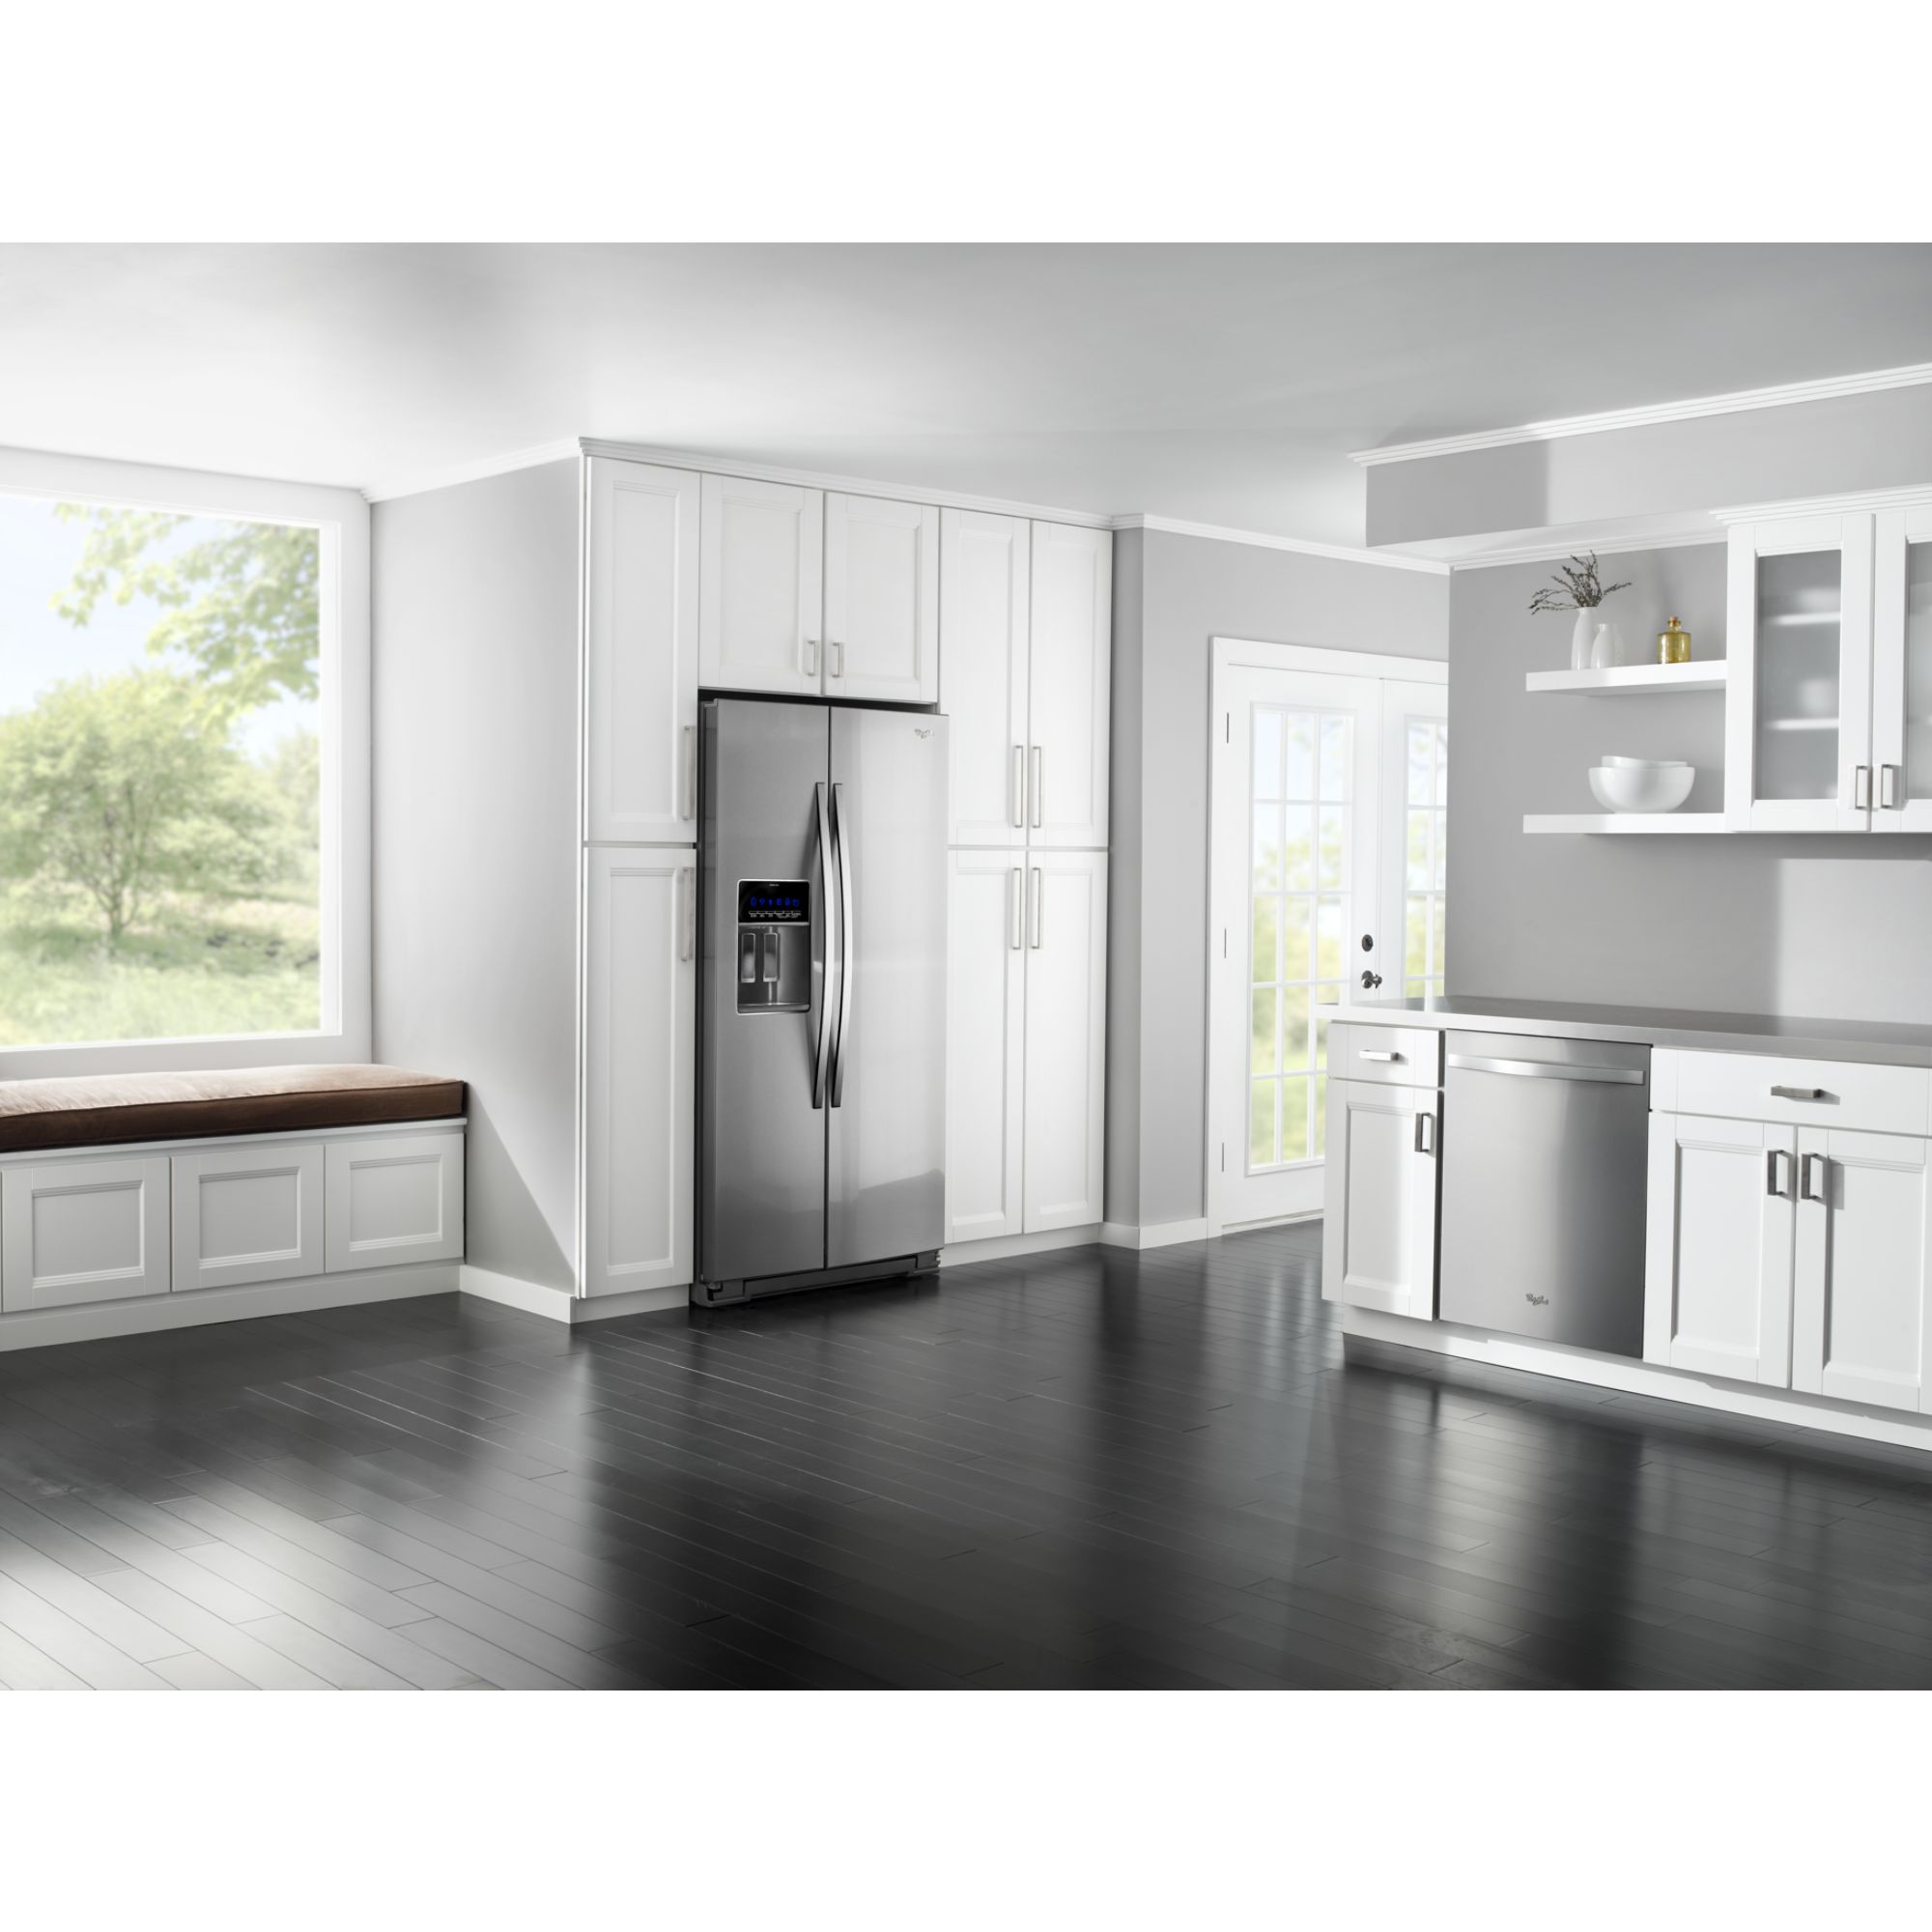 Whirlpool Gold 24.5 cu. ft. Counter-Depth Side-by-Side Refrigerator w/ MicroEdge™ Shelves - Stainless Steel